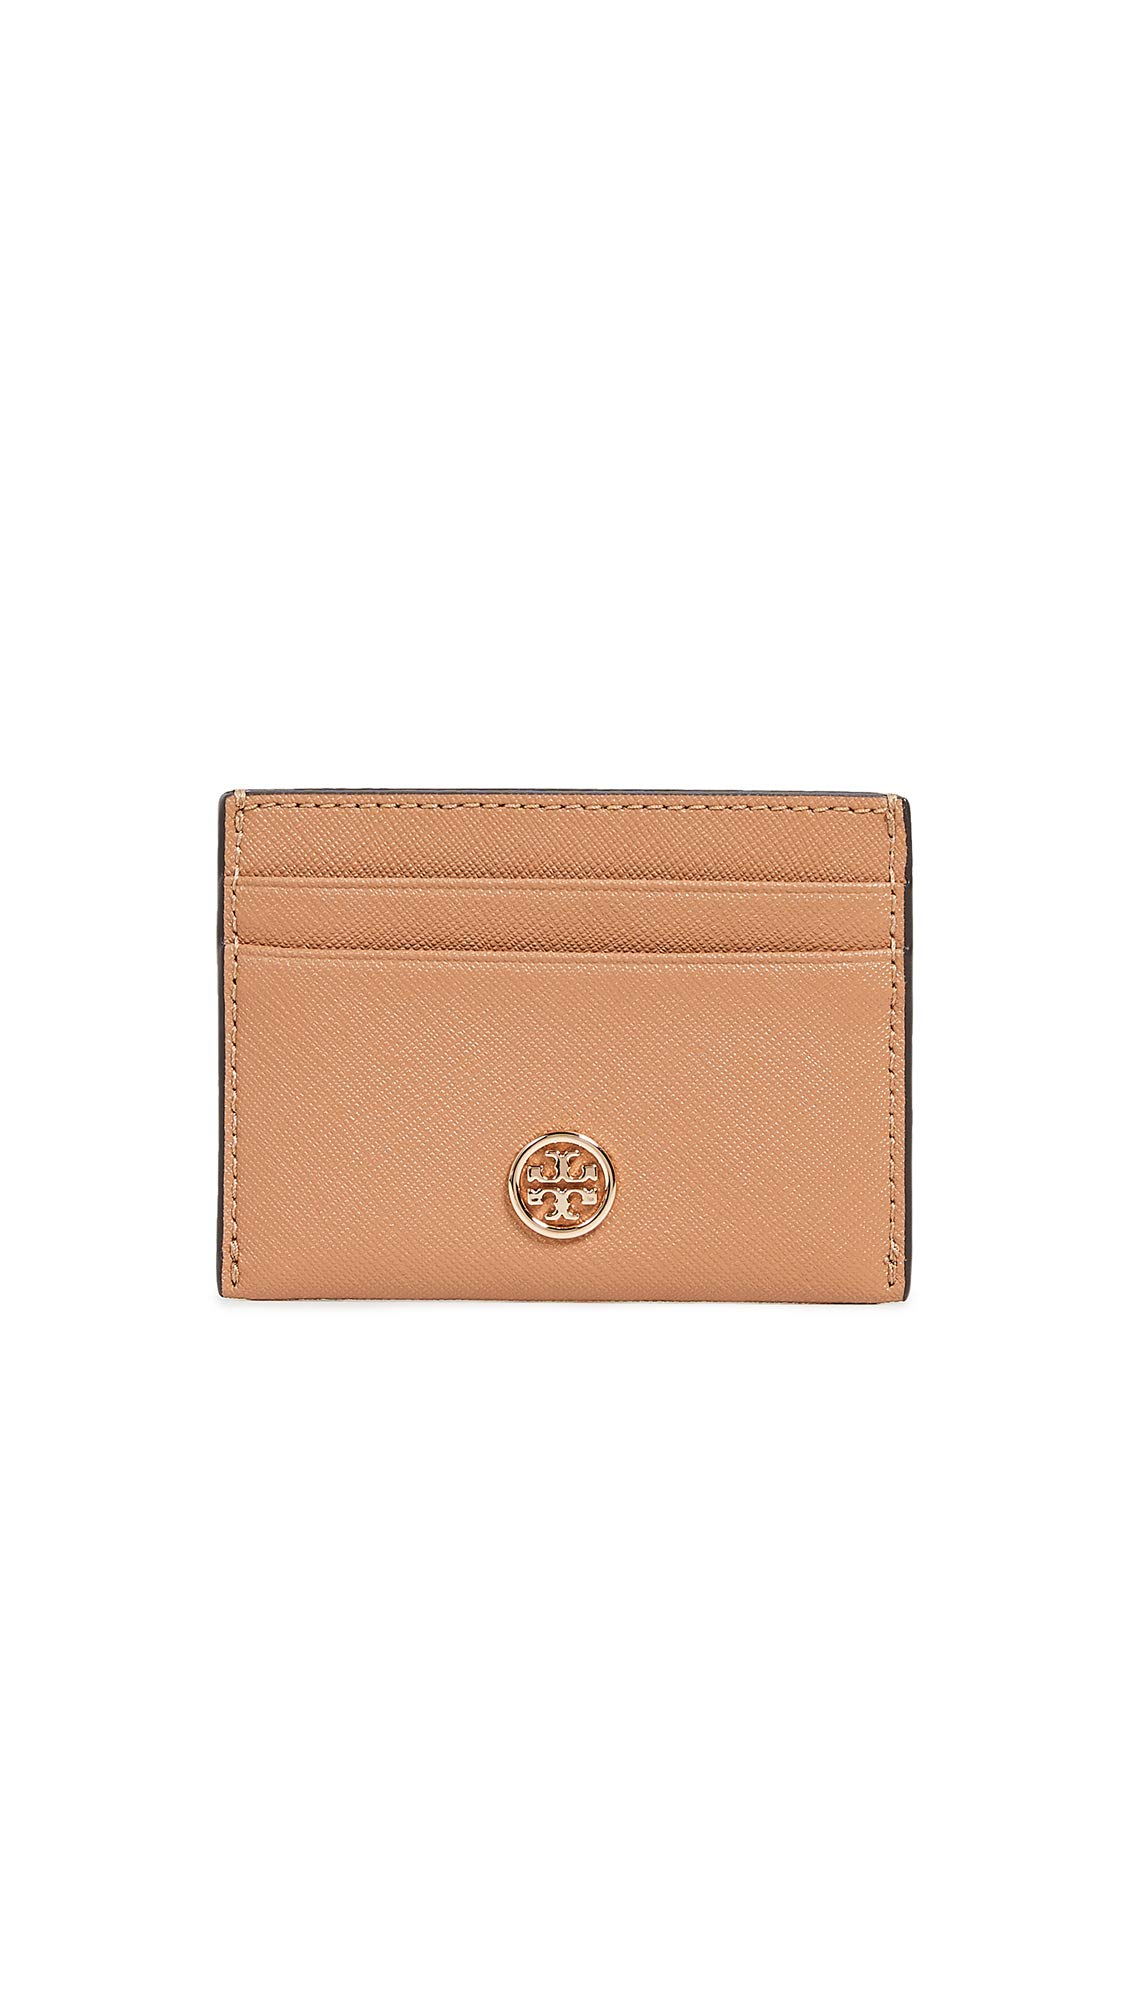 Tory Burch Women's Robinson Card Case, Cardamom, Orange, Tan, One Size